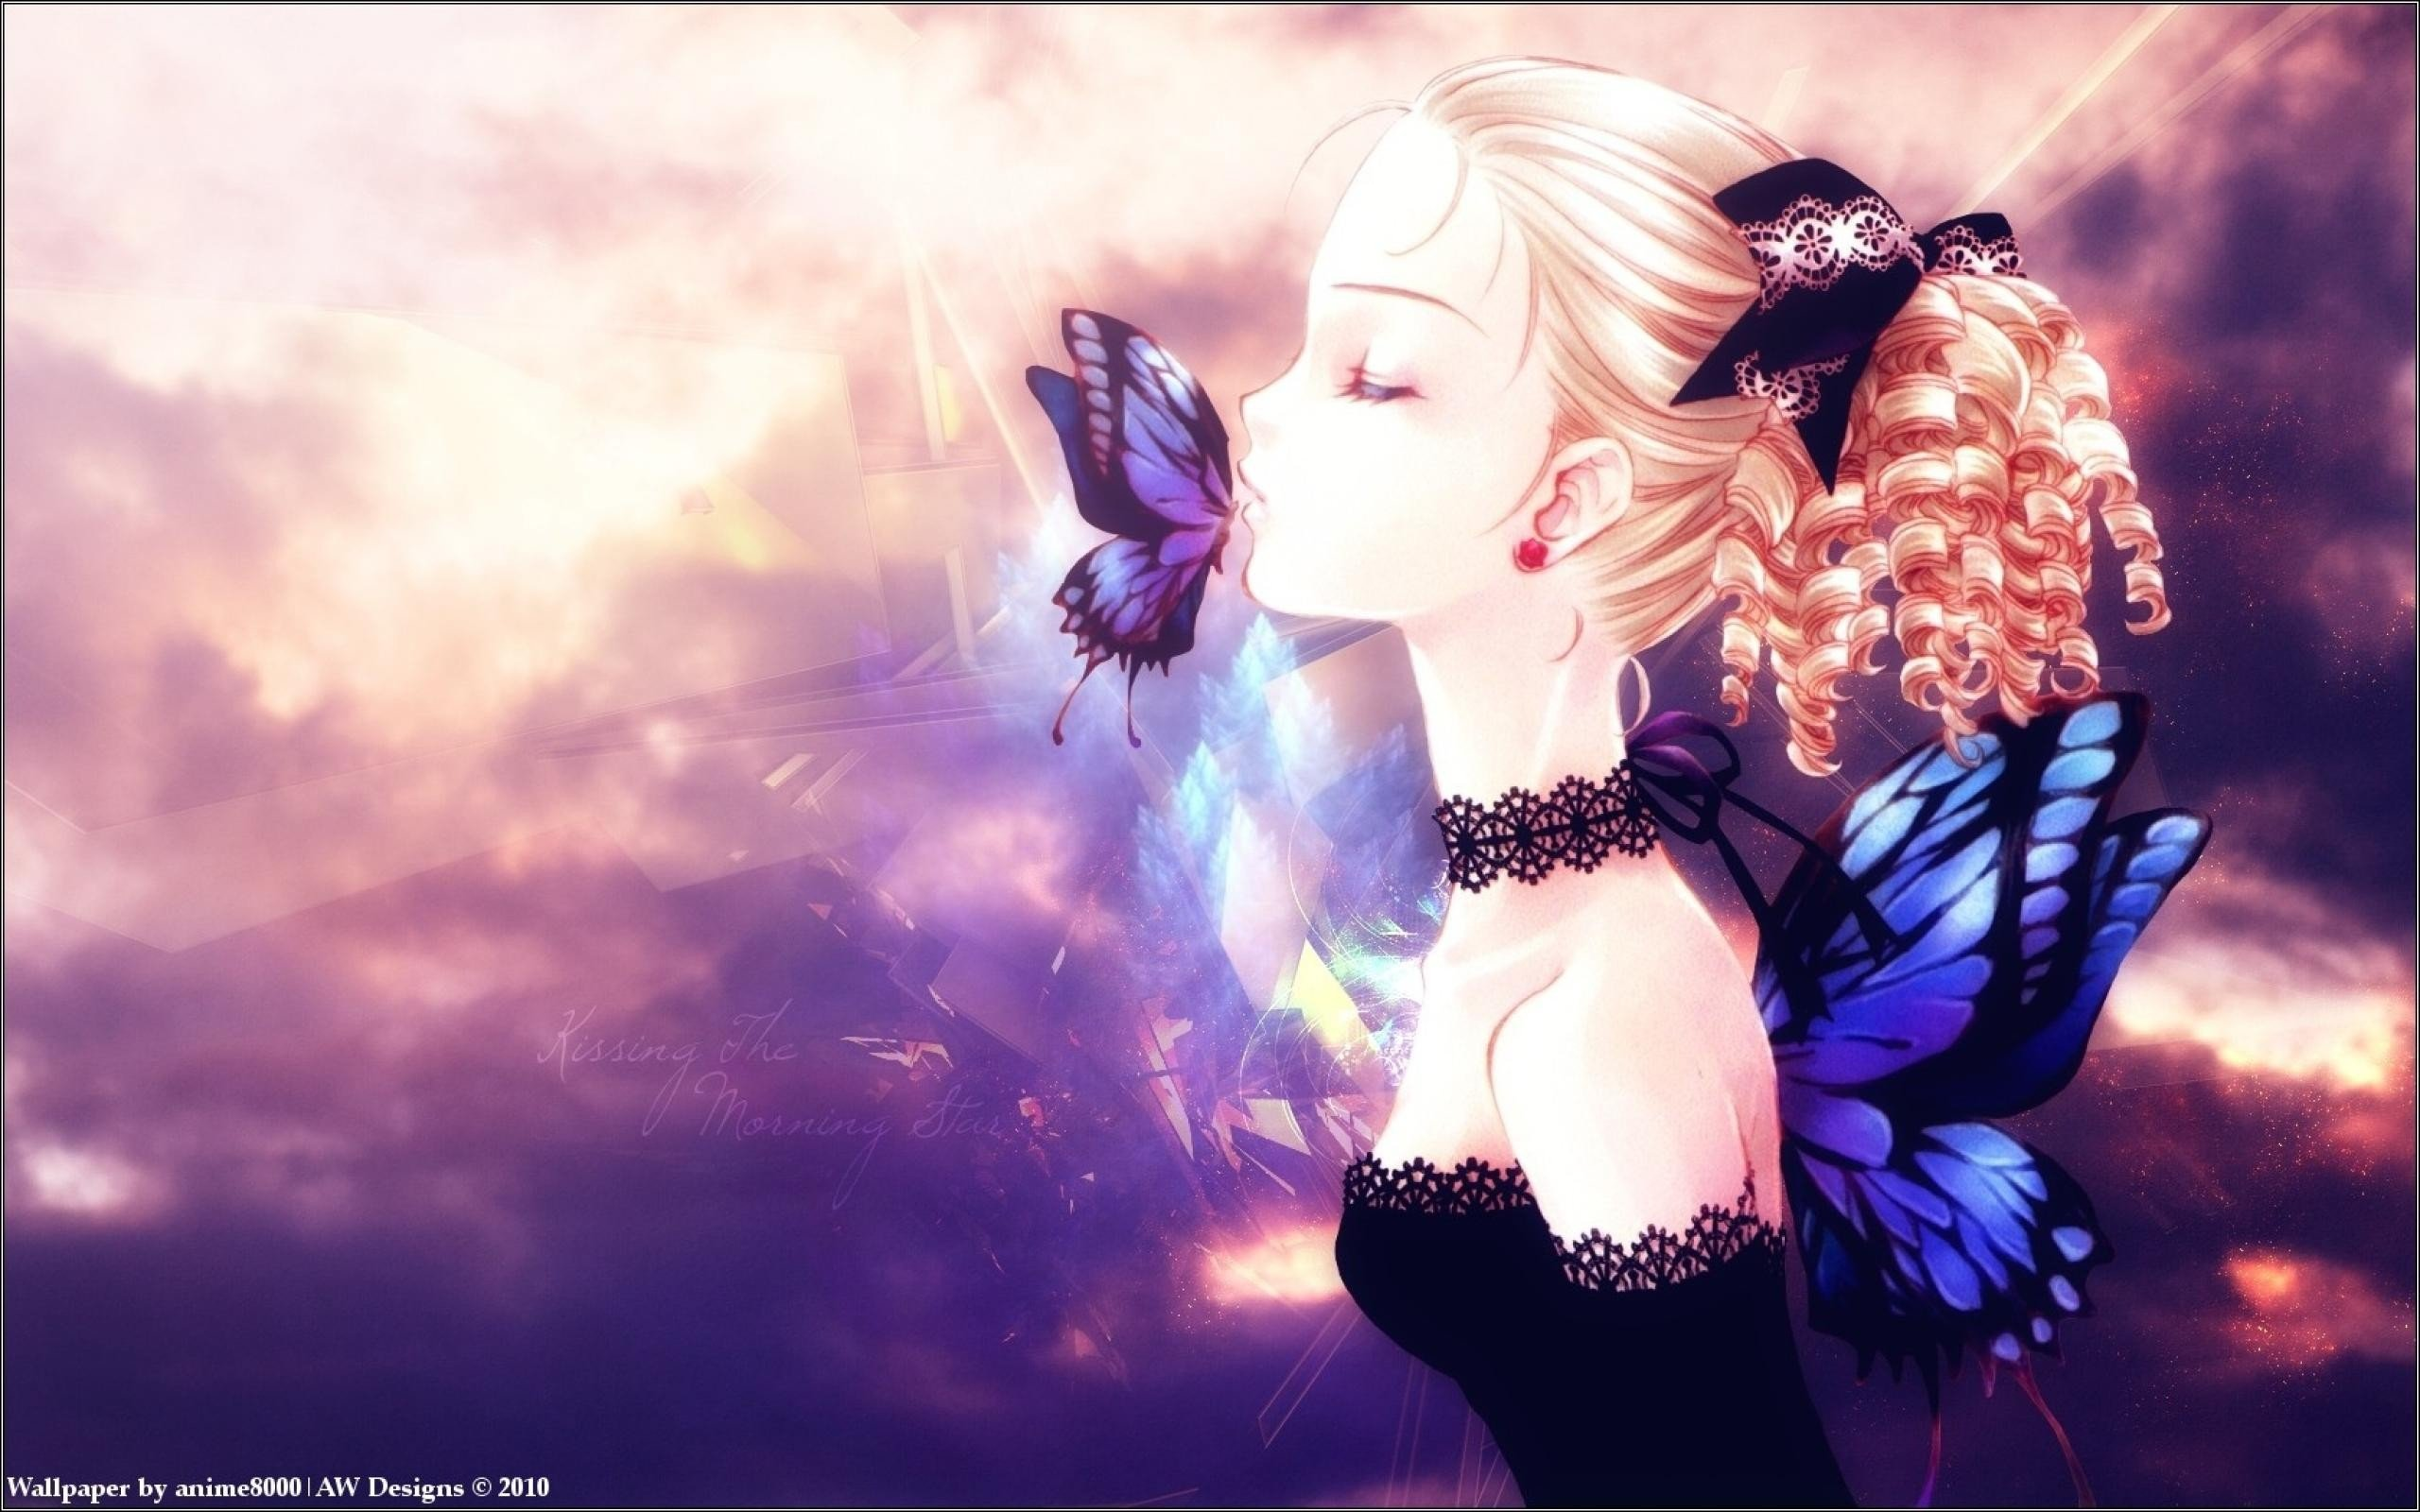 Anime Girls, Anime, Original Characters, Closed Eyes, - Anime Wallpaper Butterfly , HD Wallpaper & Backgrounds